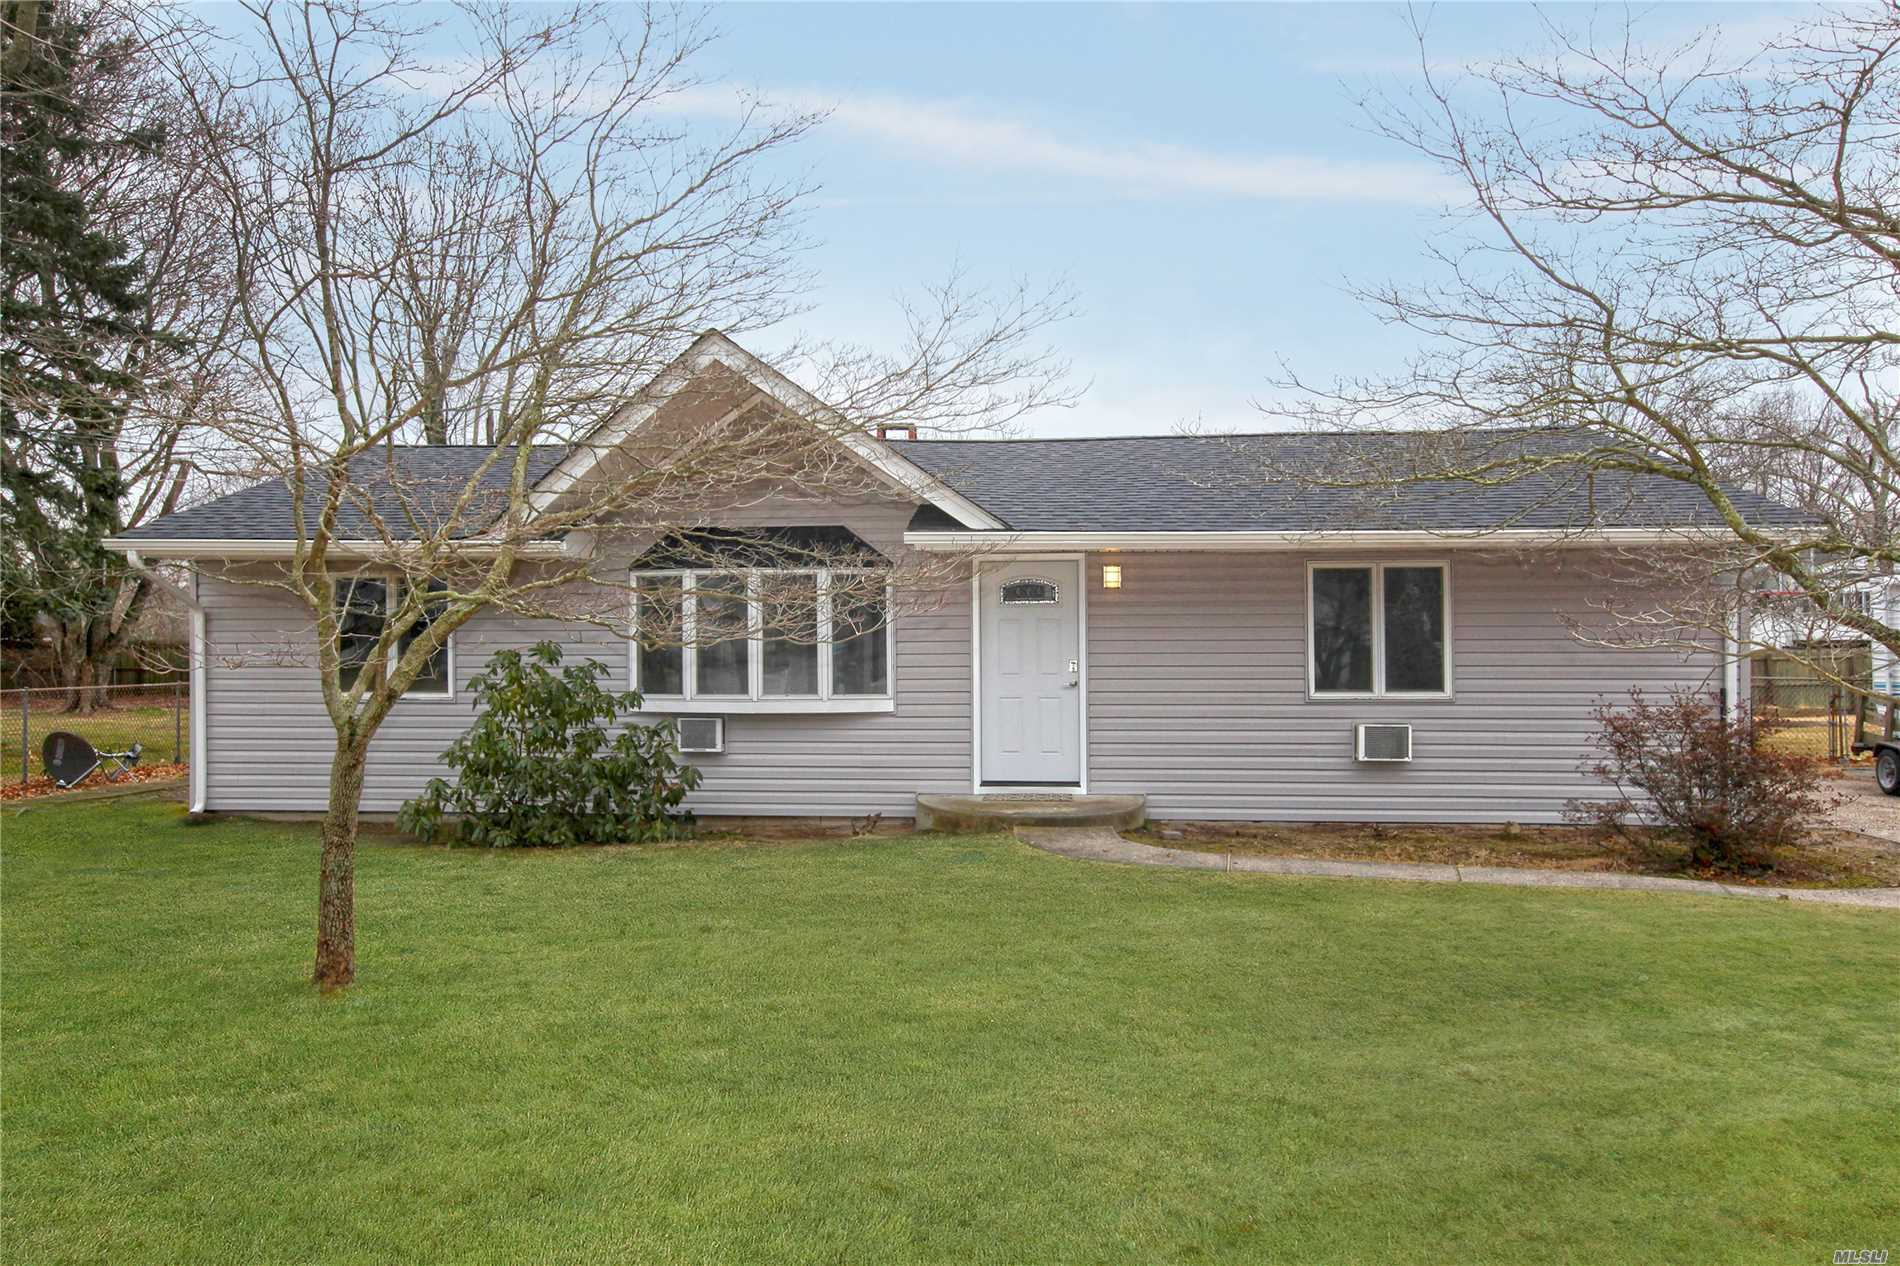 44 Morris Ave - Patchogue, New York